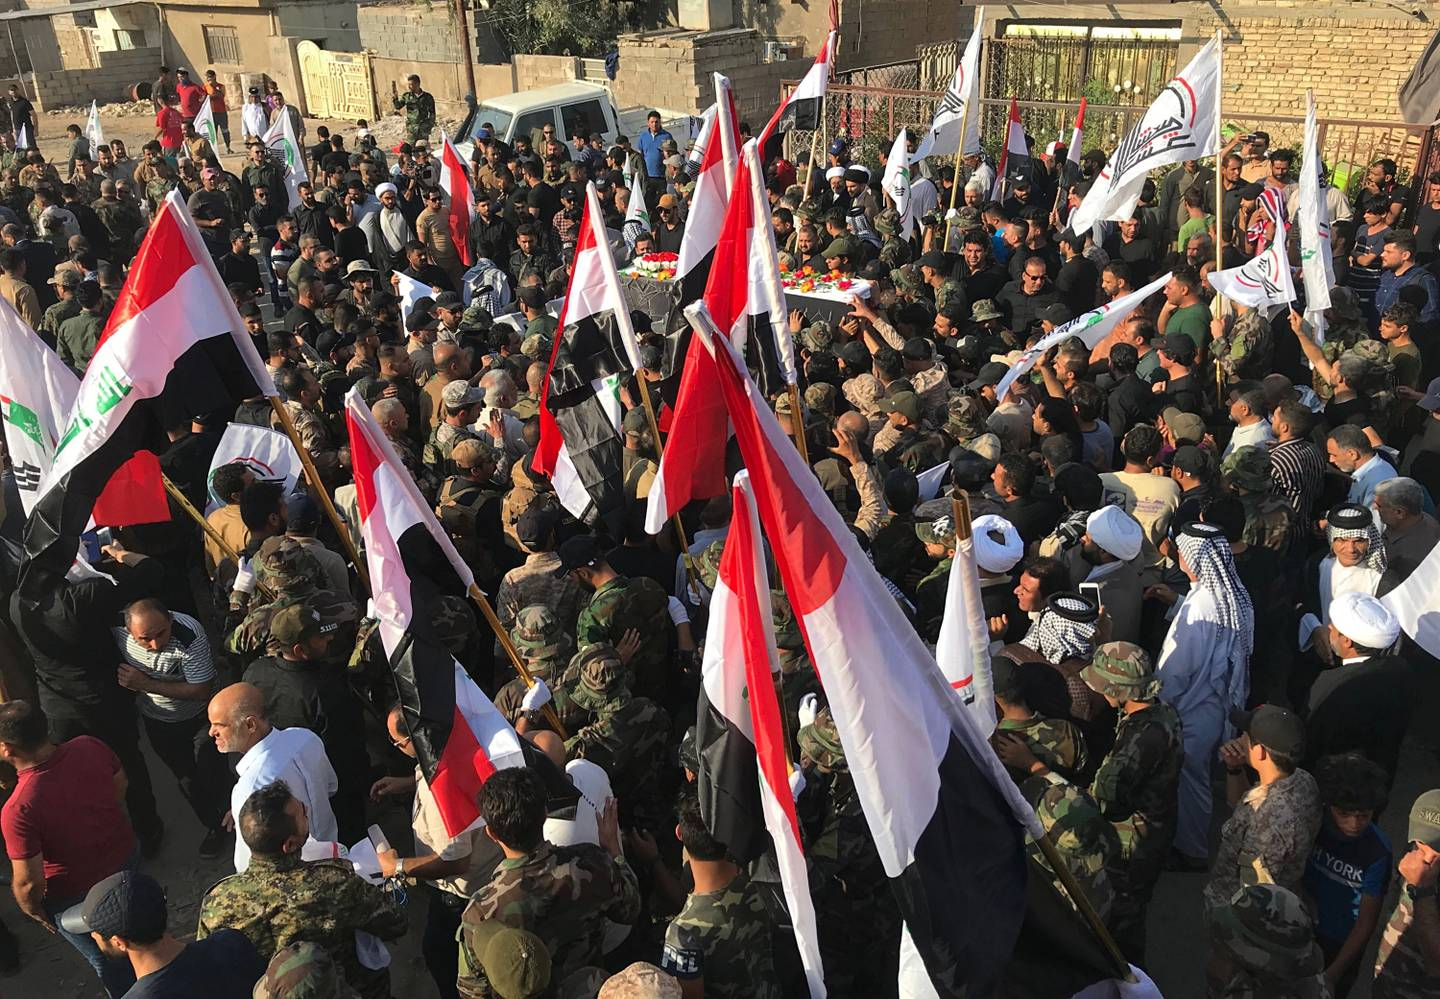 Mourners carry the coffin of Abu Ali al-Dabi, a fighter of the Popular Mobilization Forces killed in a drone attack, during his funeral procession in Baghdad, Iraq, Monday, Aug. 26, 2019.